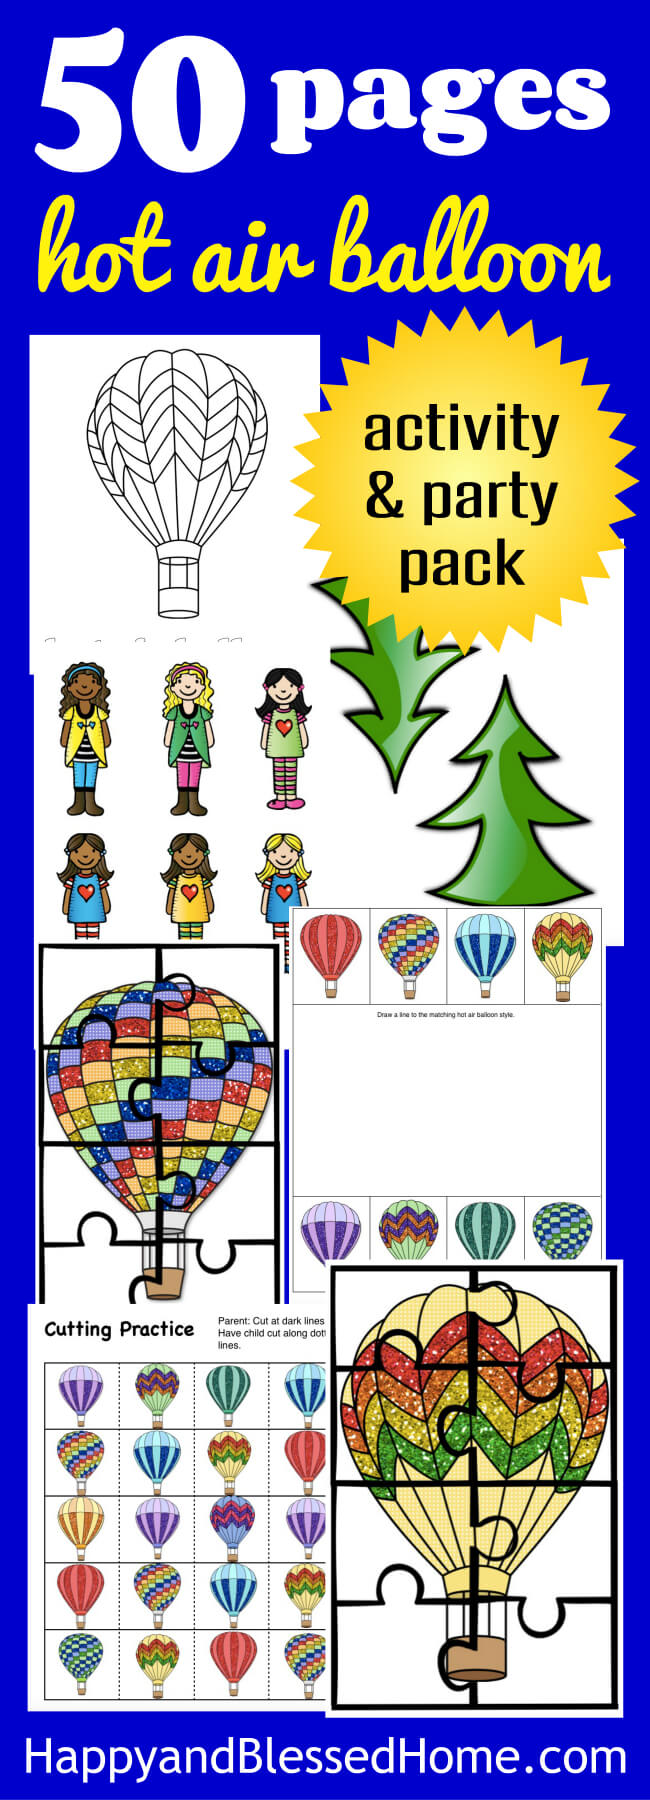 hight resolution of Hot Air Balloon Activity Pack for Kids and Fun Hot Air Balloon Recipe